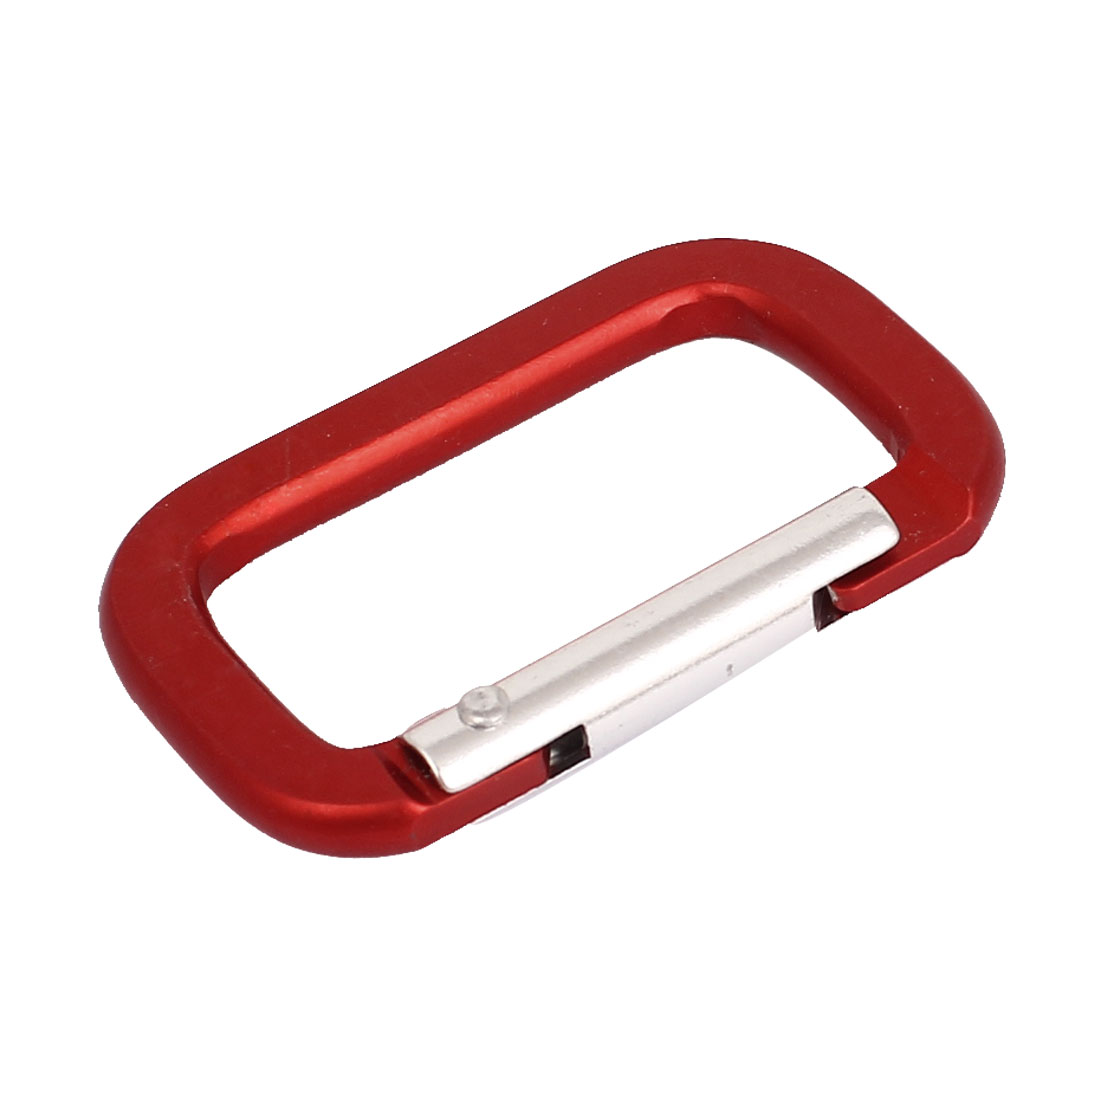 Travel Camping Hiking Aluminum Rectangle Shape Hook Keychain Carabiner Red